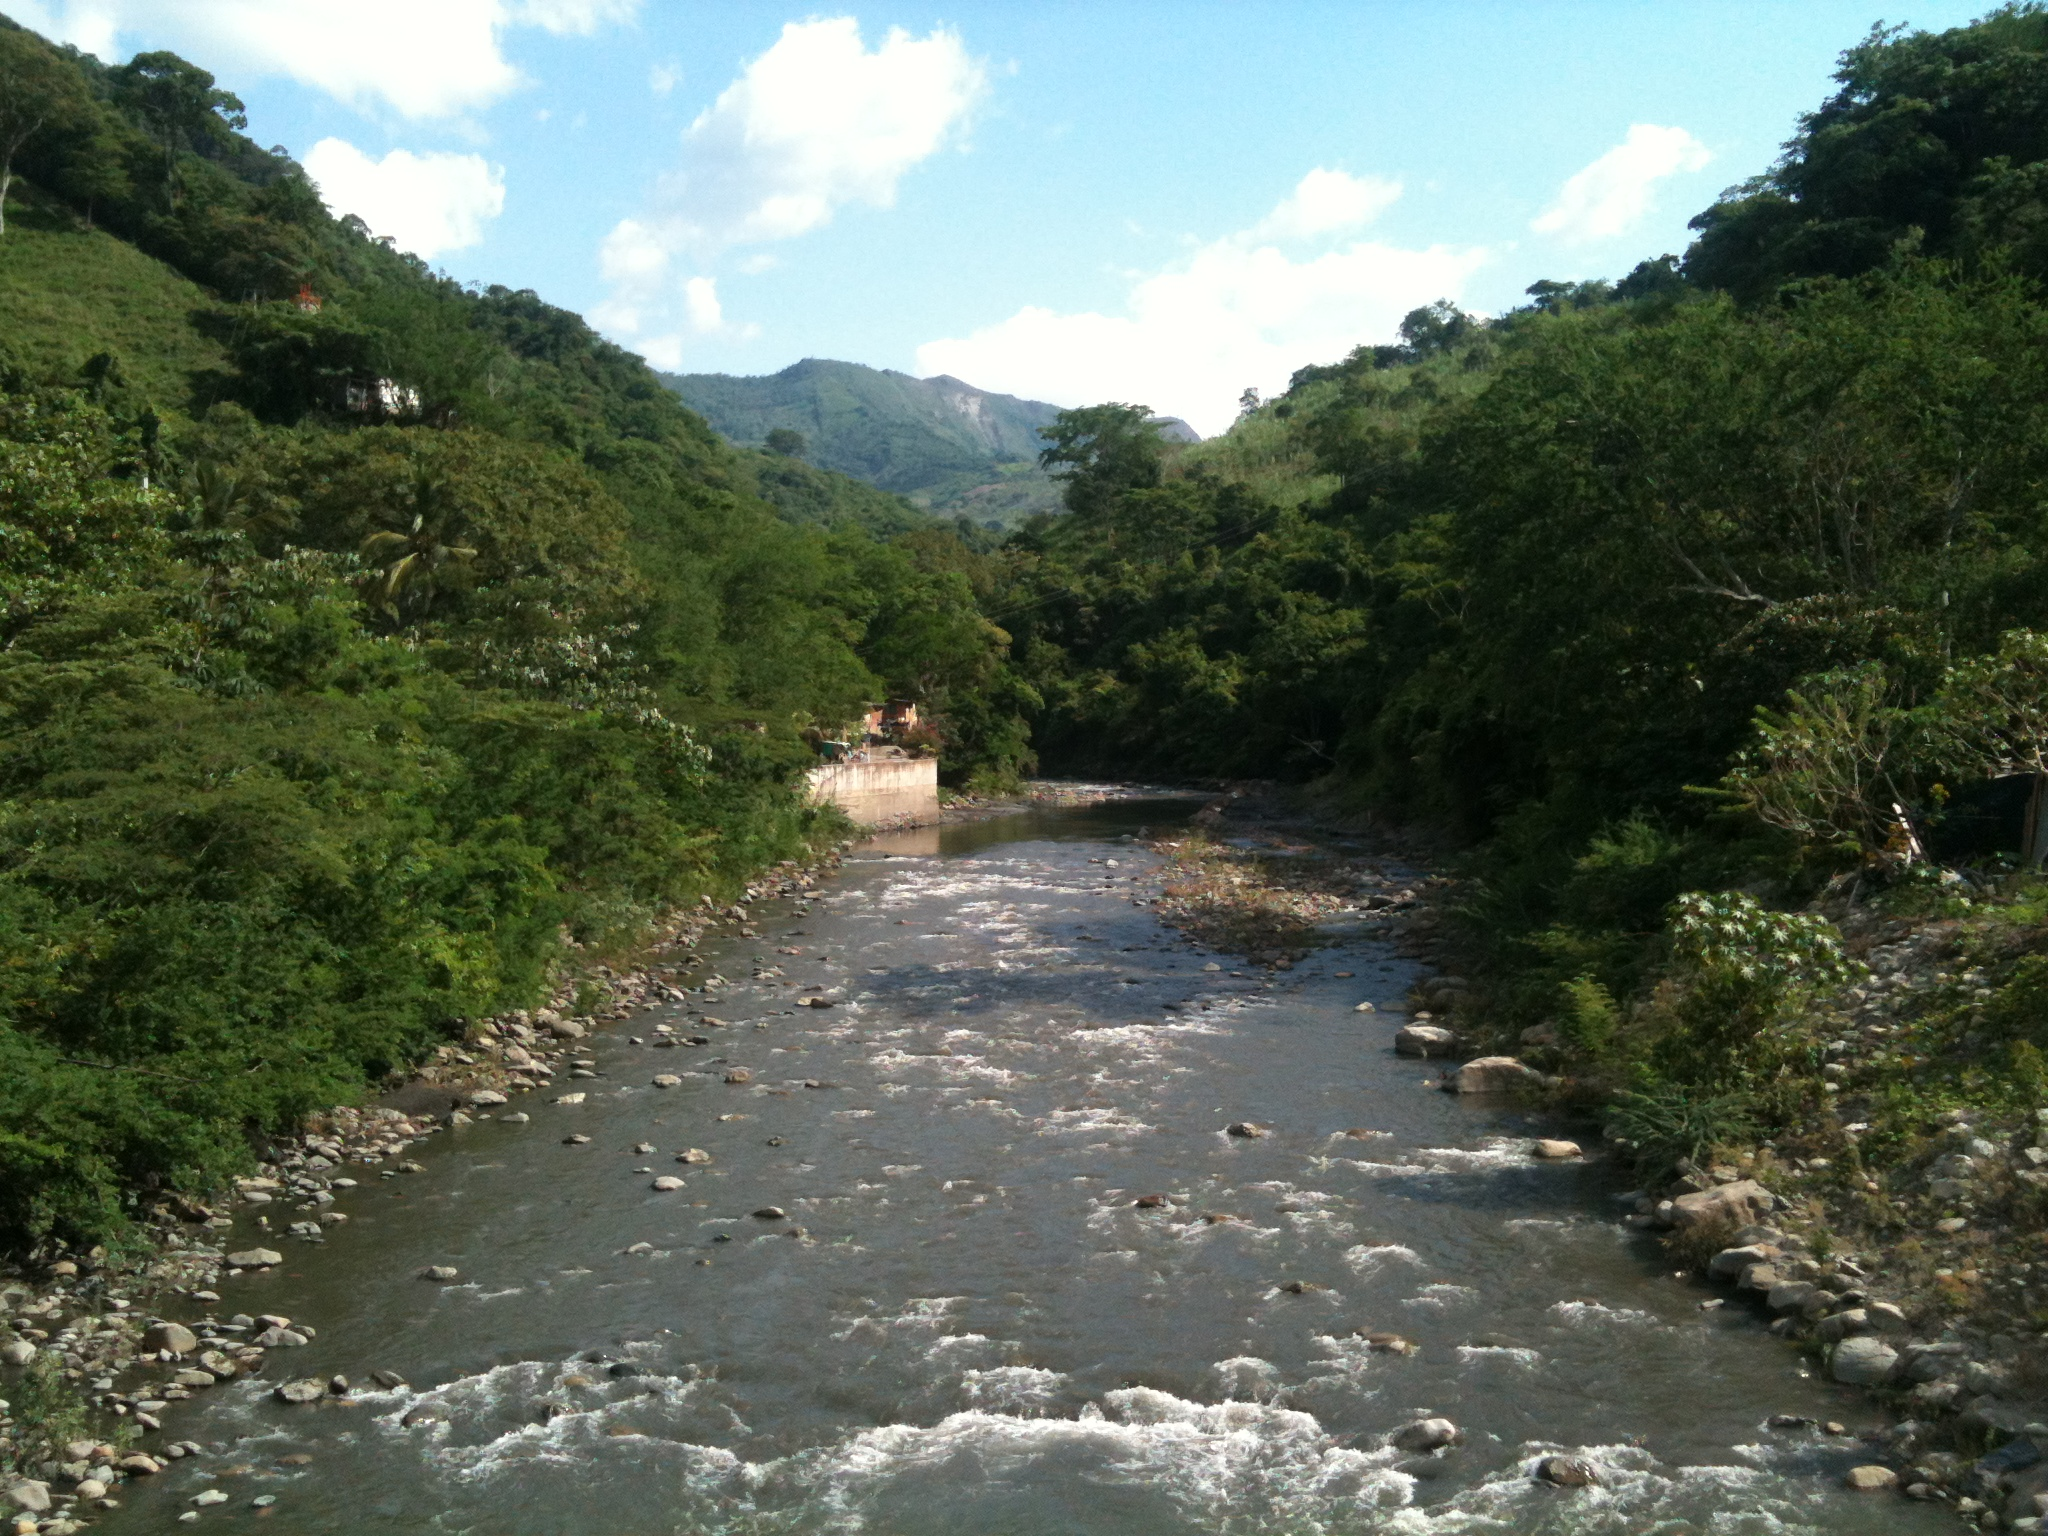 Río Negro, Tobia, Cundinamarca, Colombia.